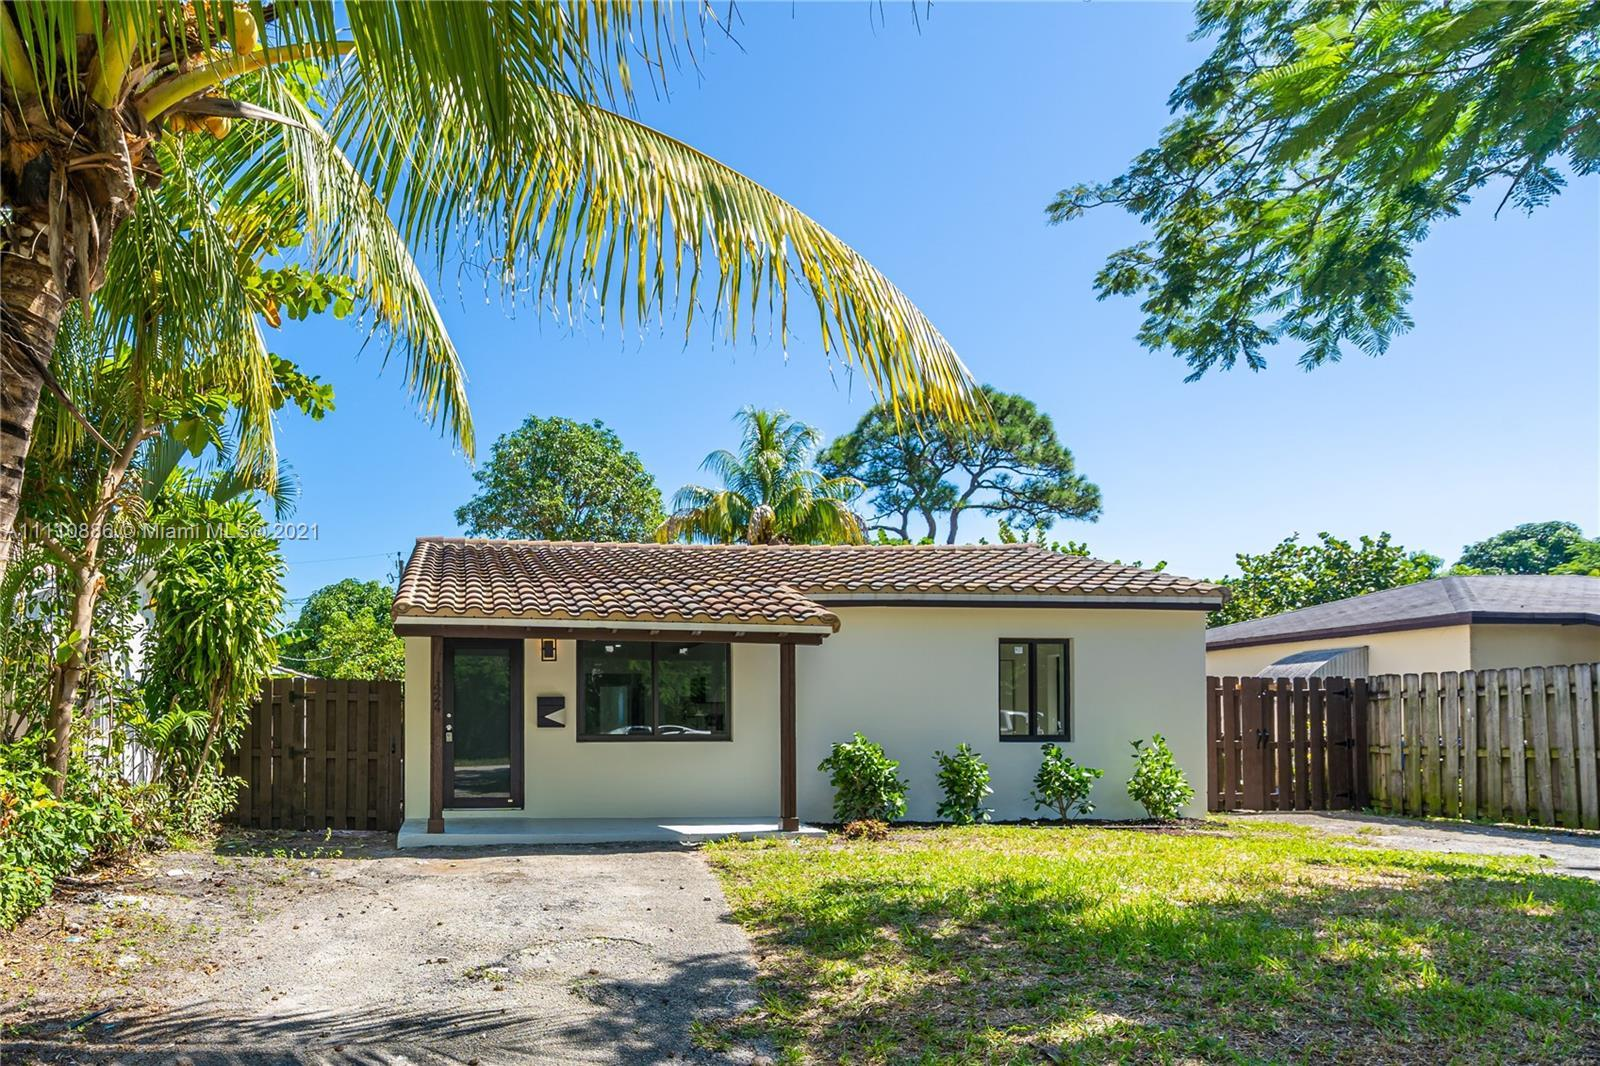 Tastefully updated 3 bed 2 bath home with a modern theme ready to move in! This bright sunlit home f